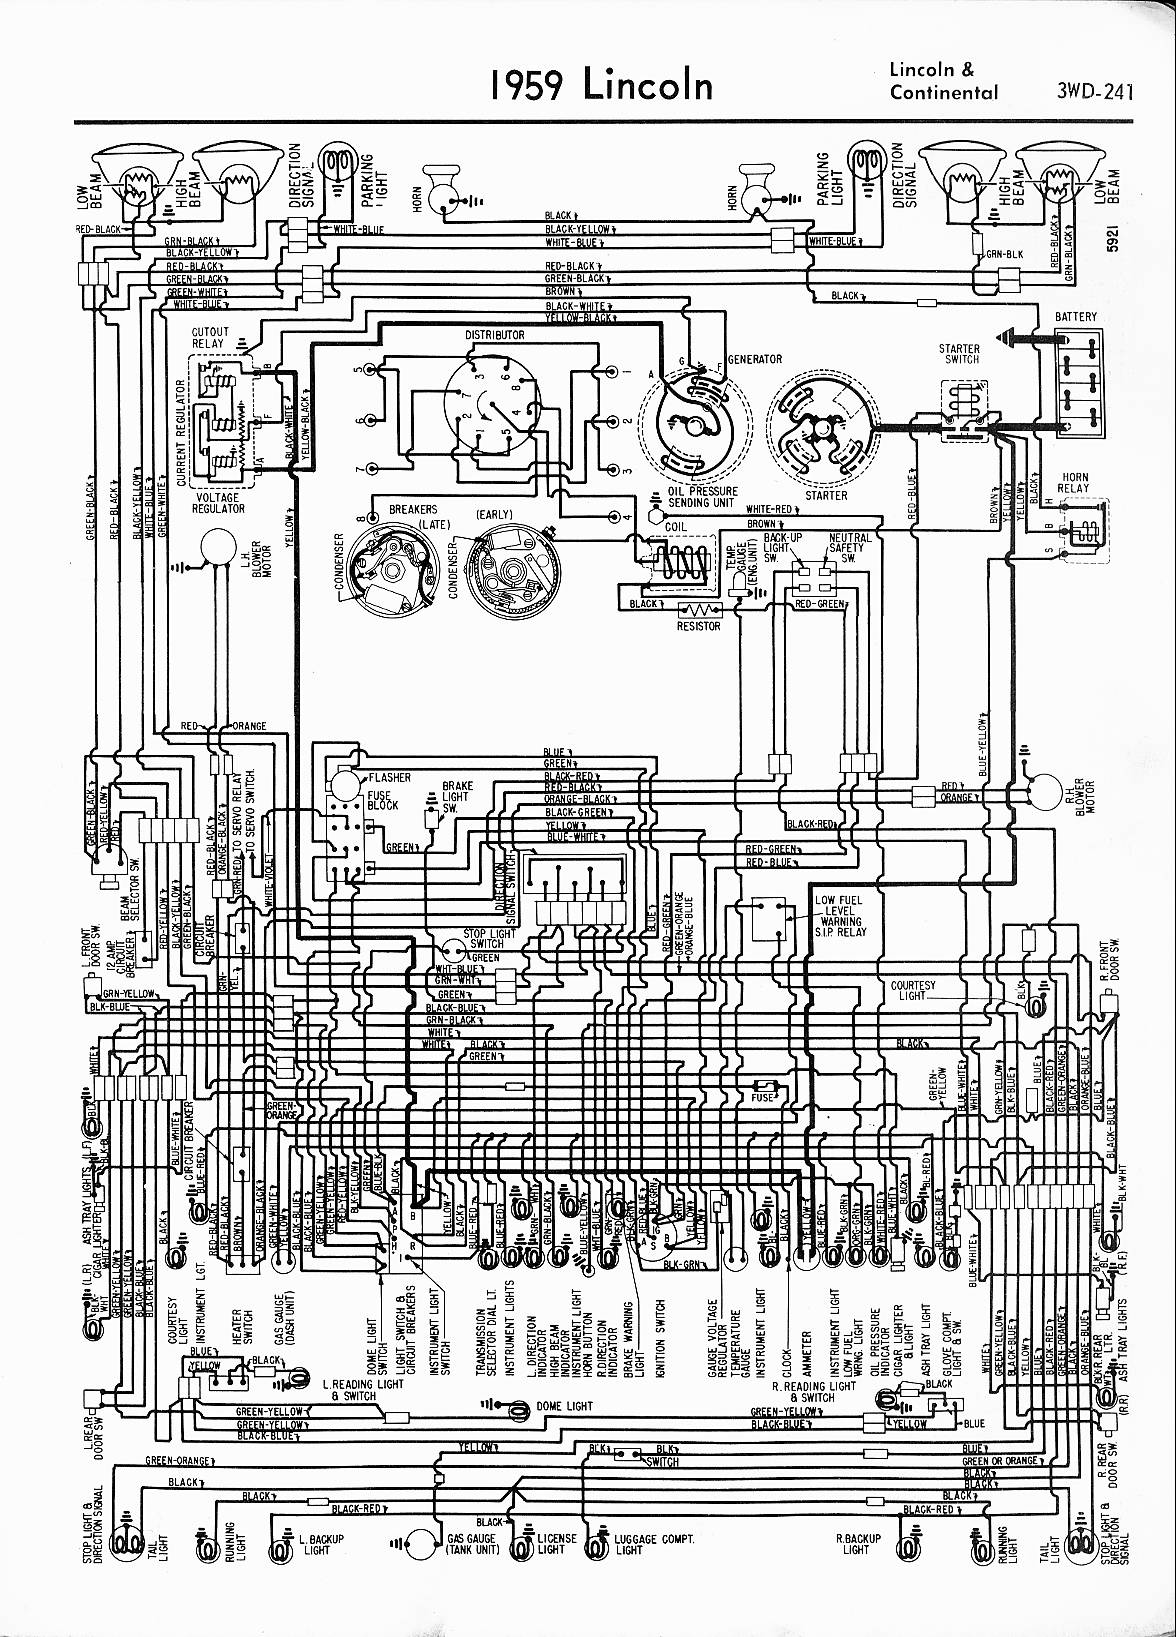 MWireLin_Lin57_z3wd 241z_004 lincoln wiring diagrams 1957 1965 1969 Lincoln Wiring Diagram at creativeand.co